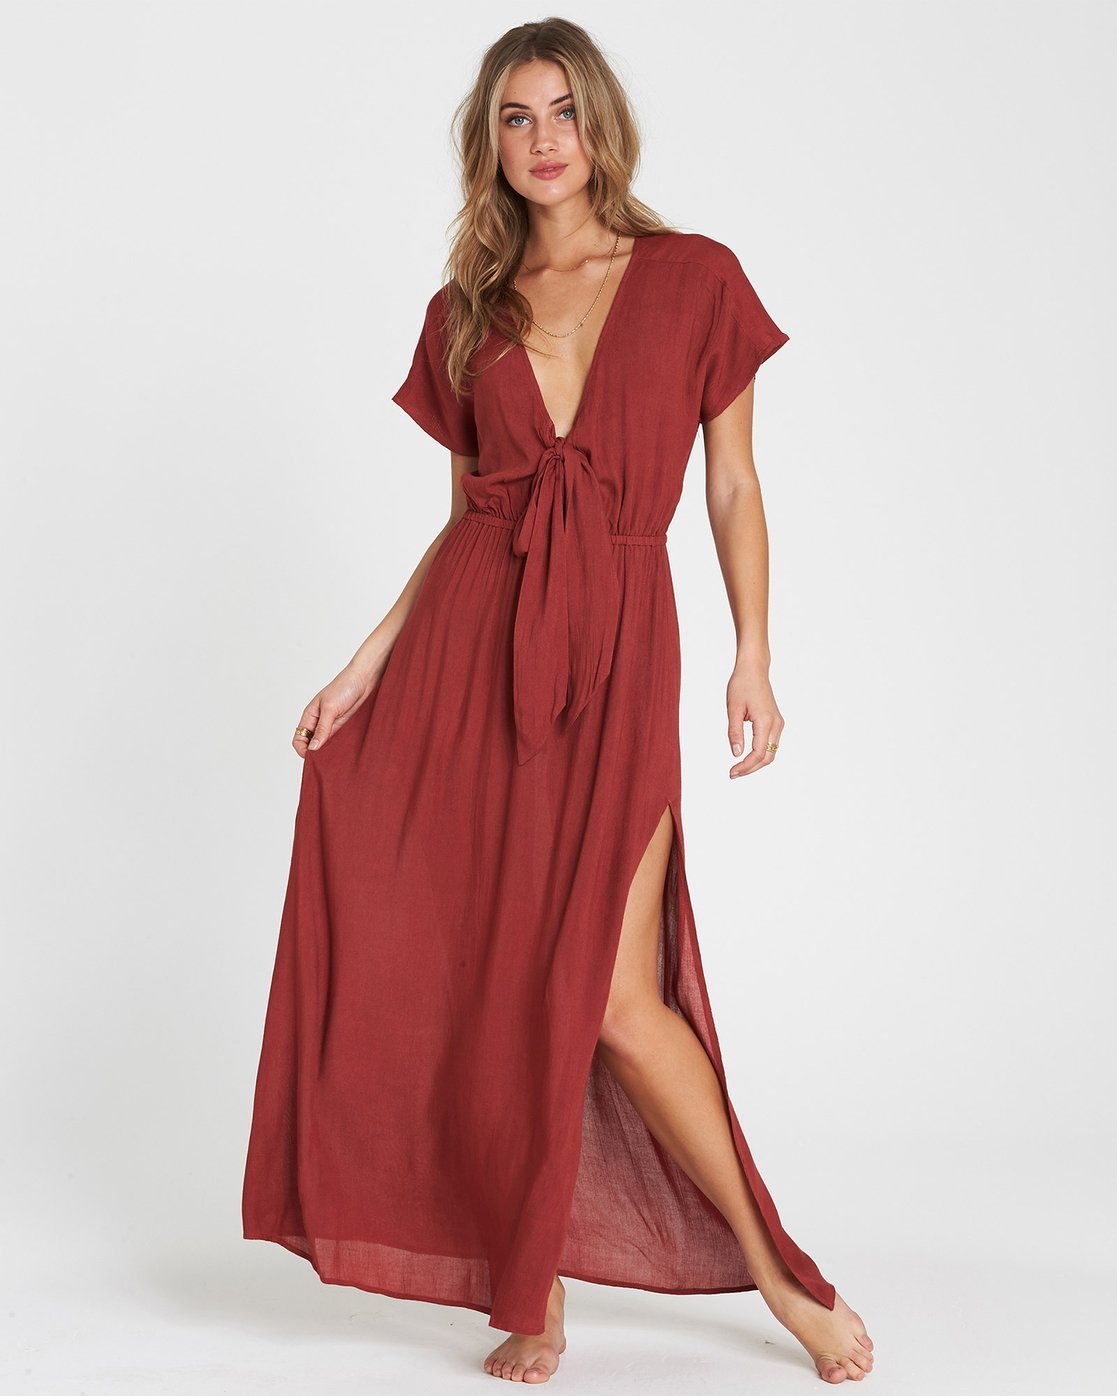 On The Sea Woven Cover Up Maxi Dress XV02